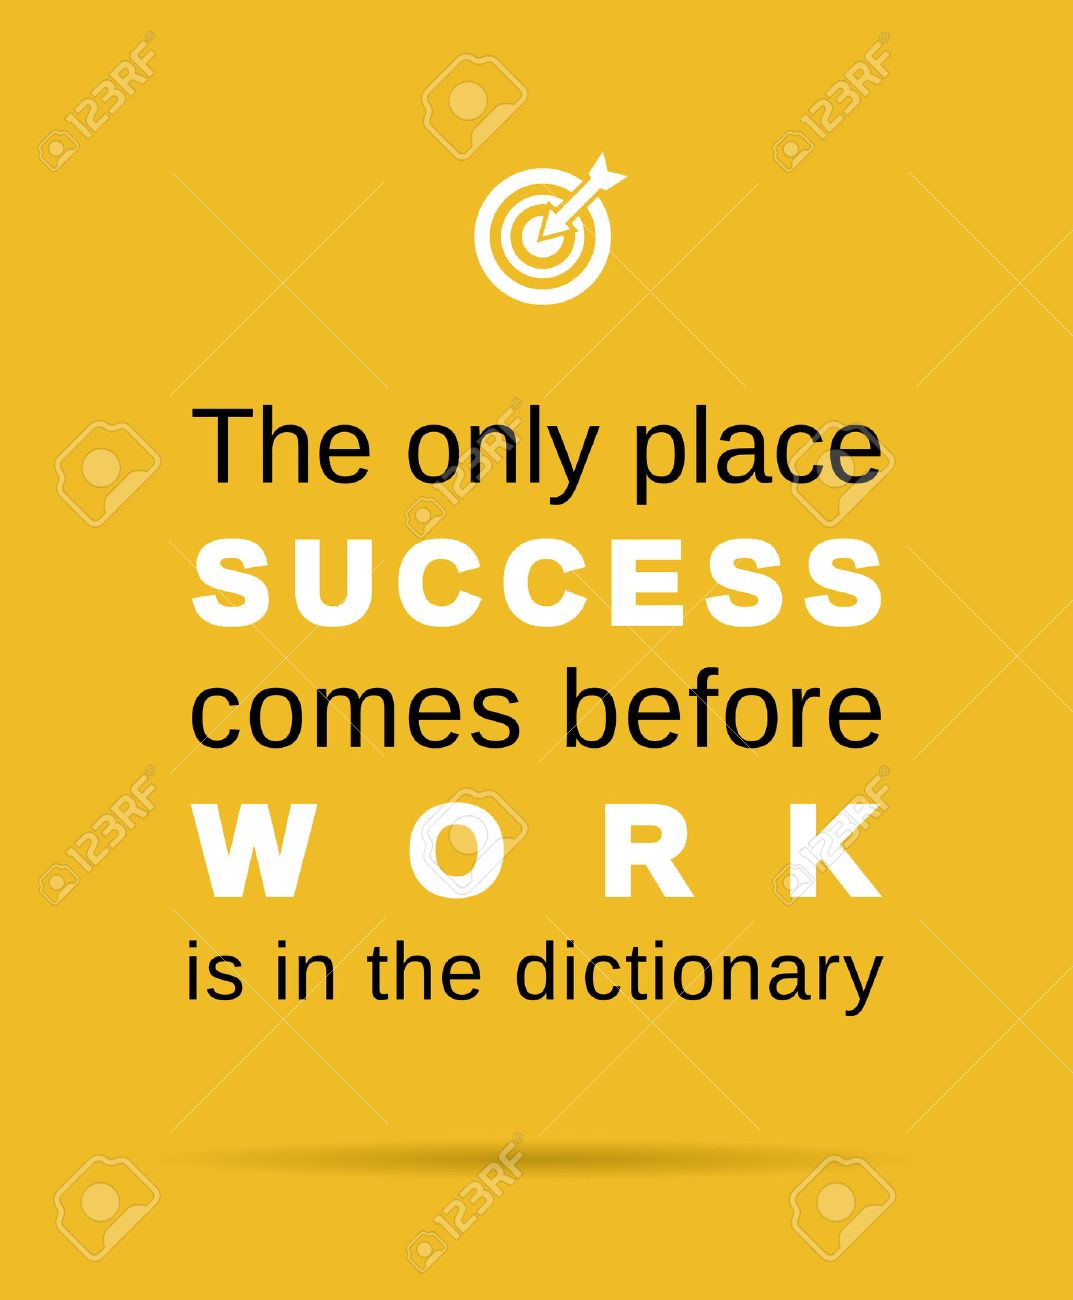 inspirational work and success business quote - 40817969